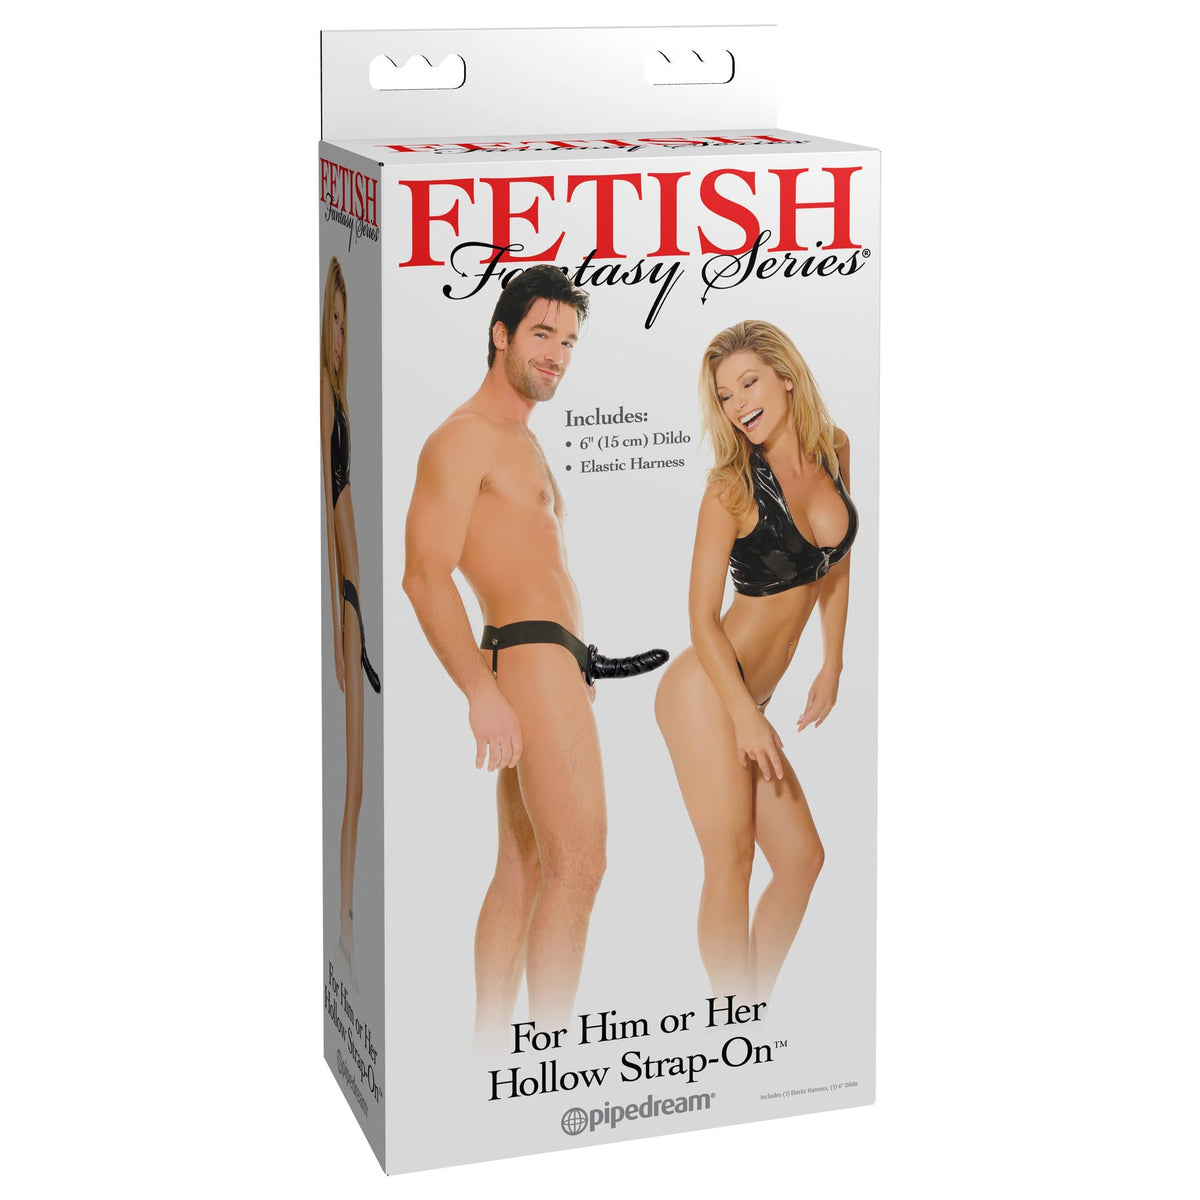 Pipedream - Fetish Fantasy Series Hollow Strap-On (Black)